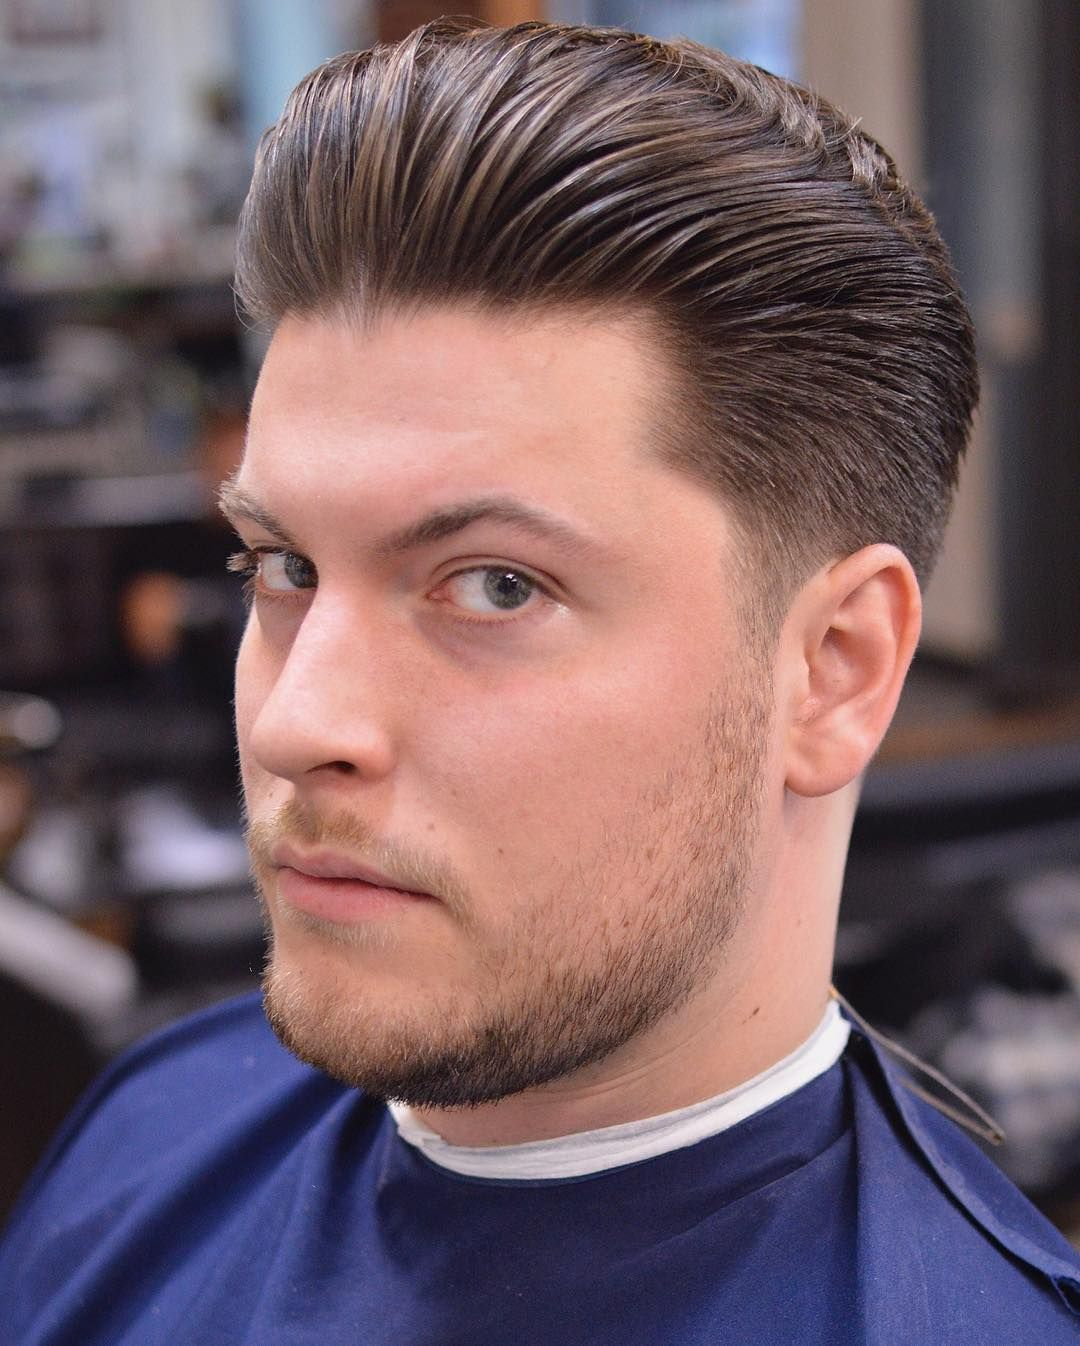 Awesome 50 Stunning Blowout Haircut Ideas For Men Trendy